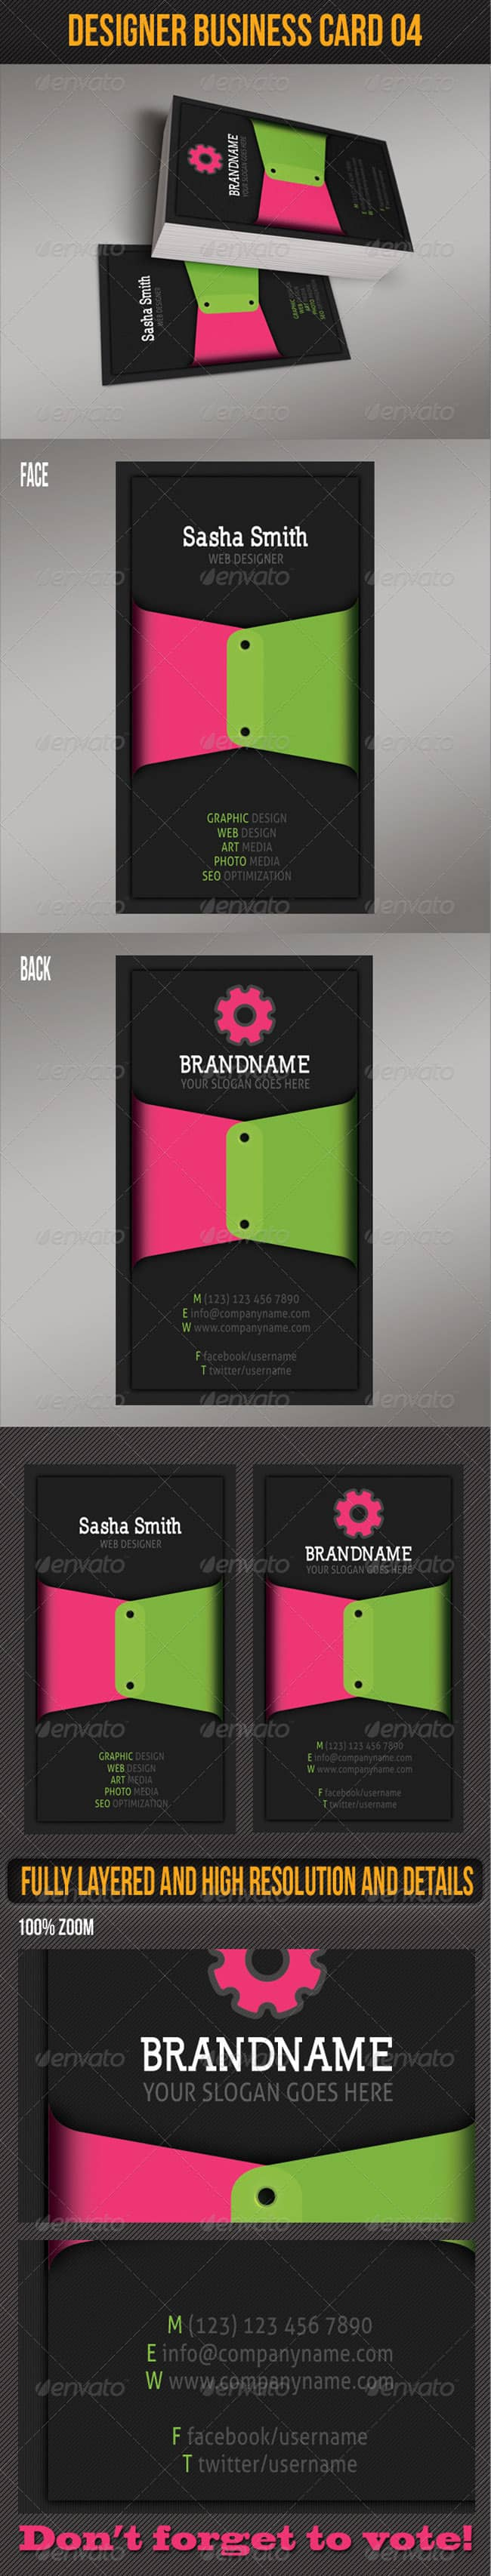 Designer Business Card 04